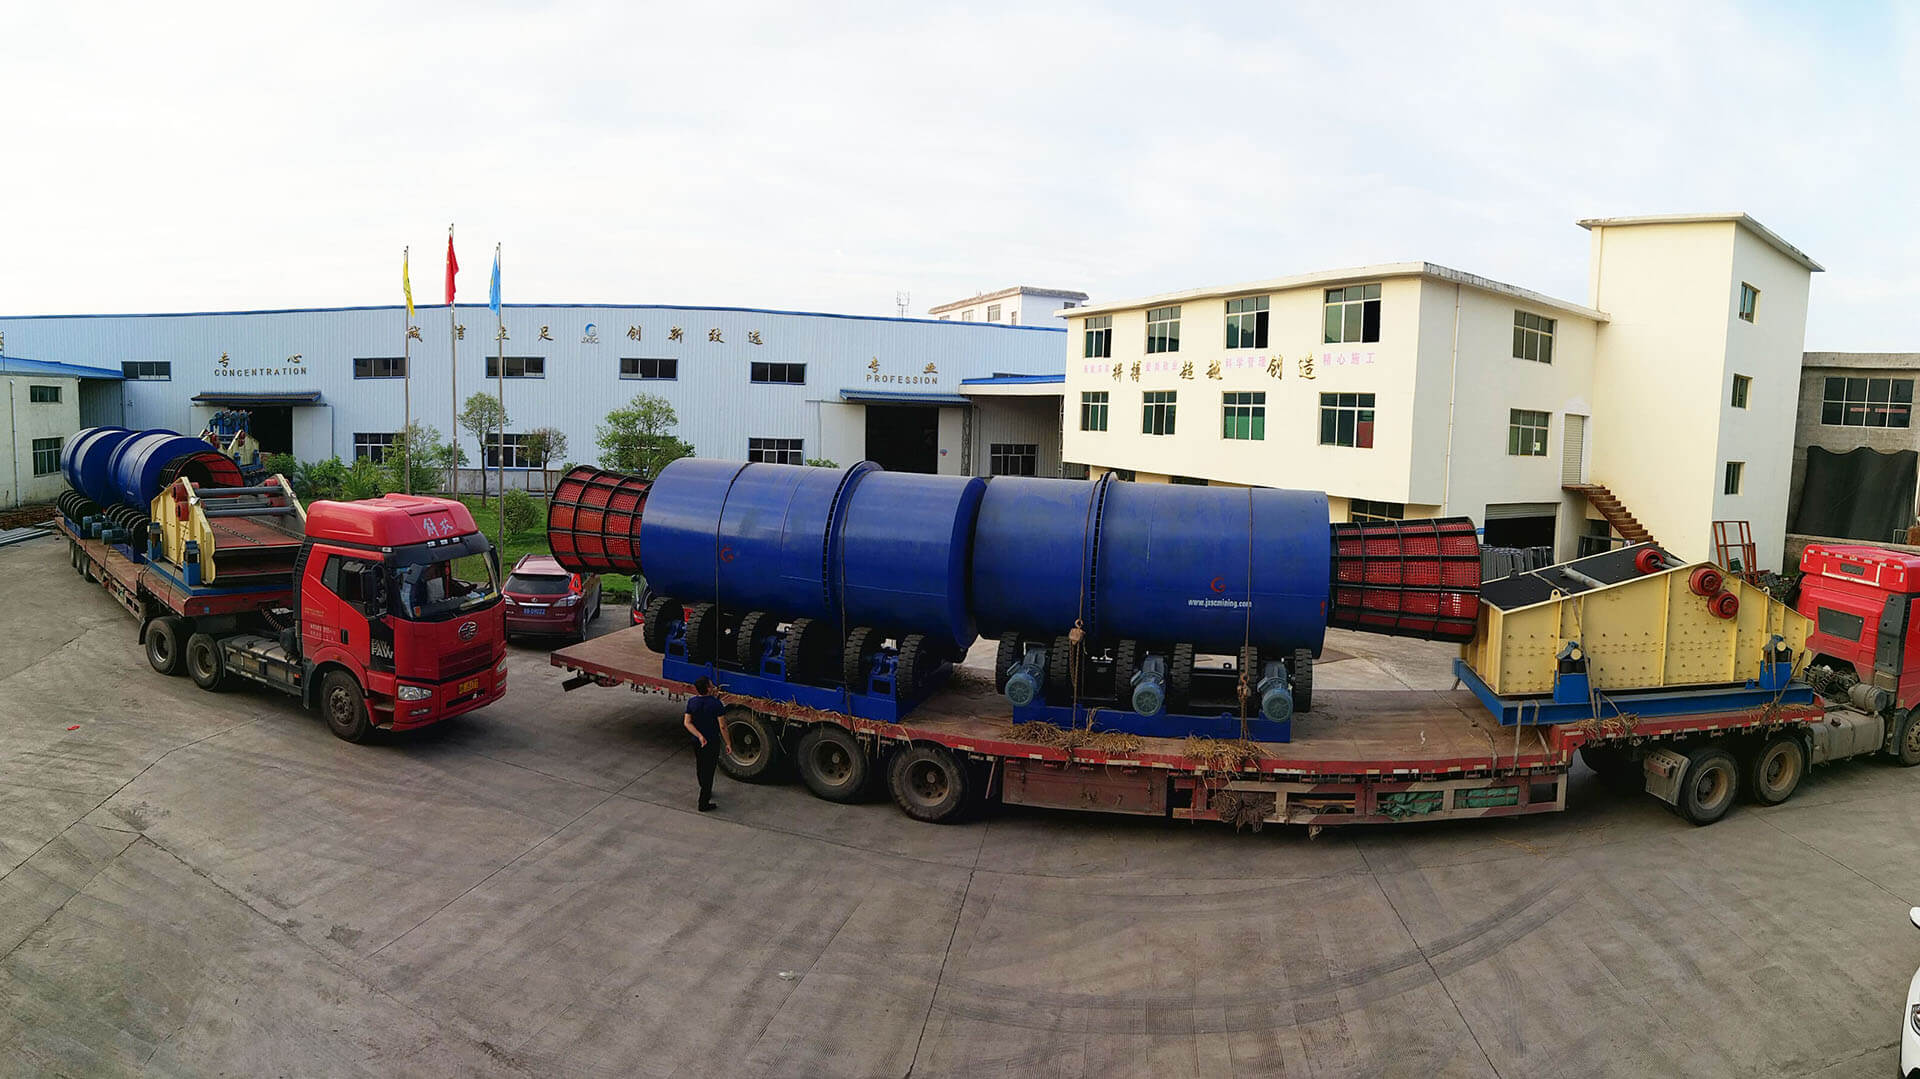 trommel scrubber and dewatering screen ready for delivery